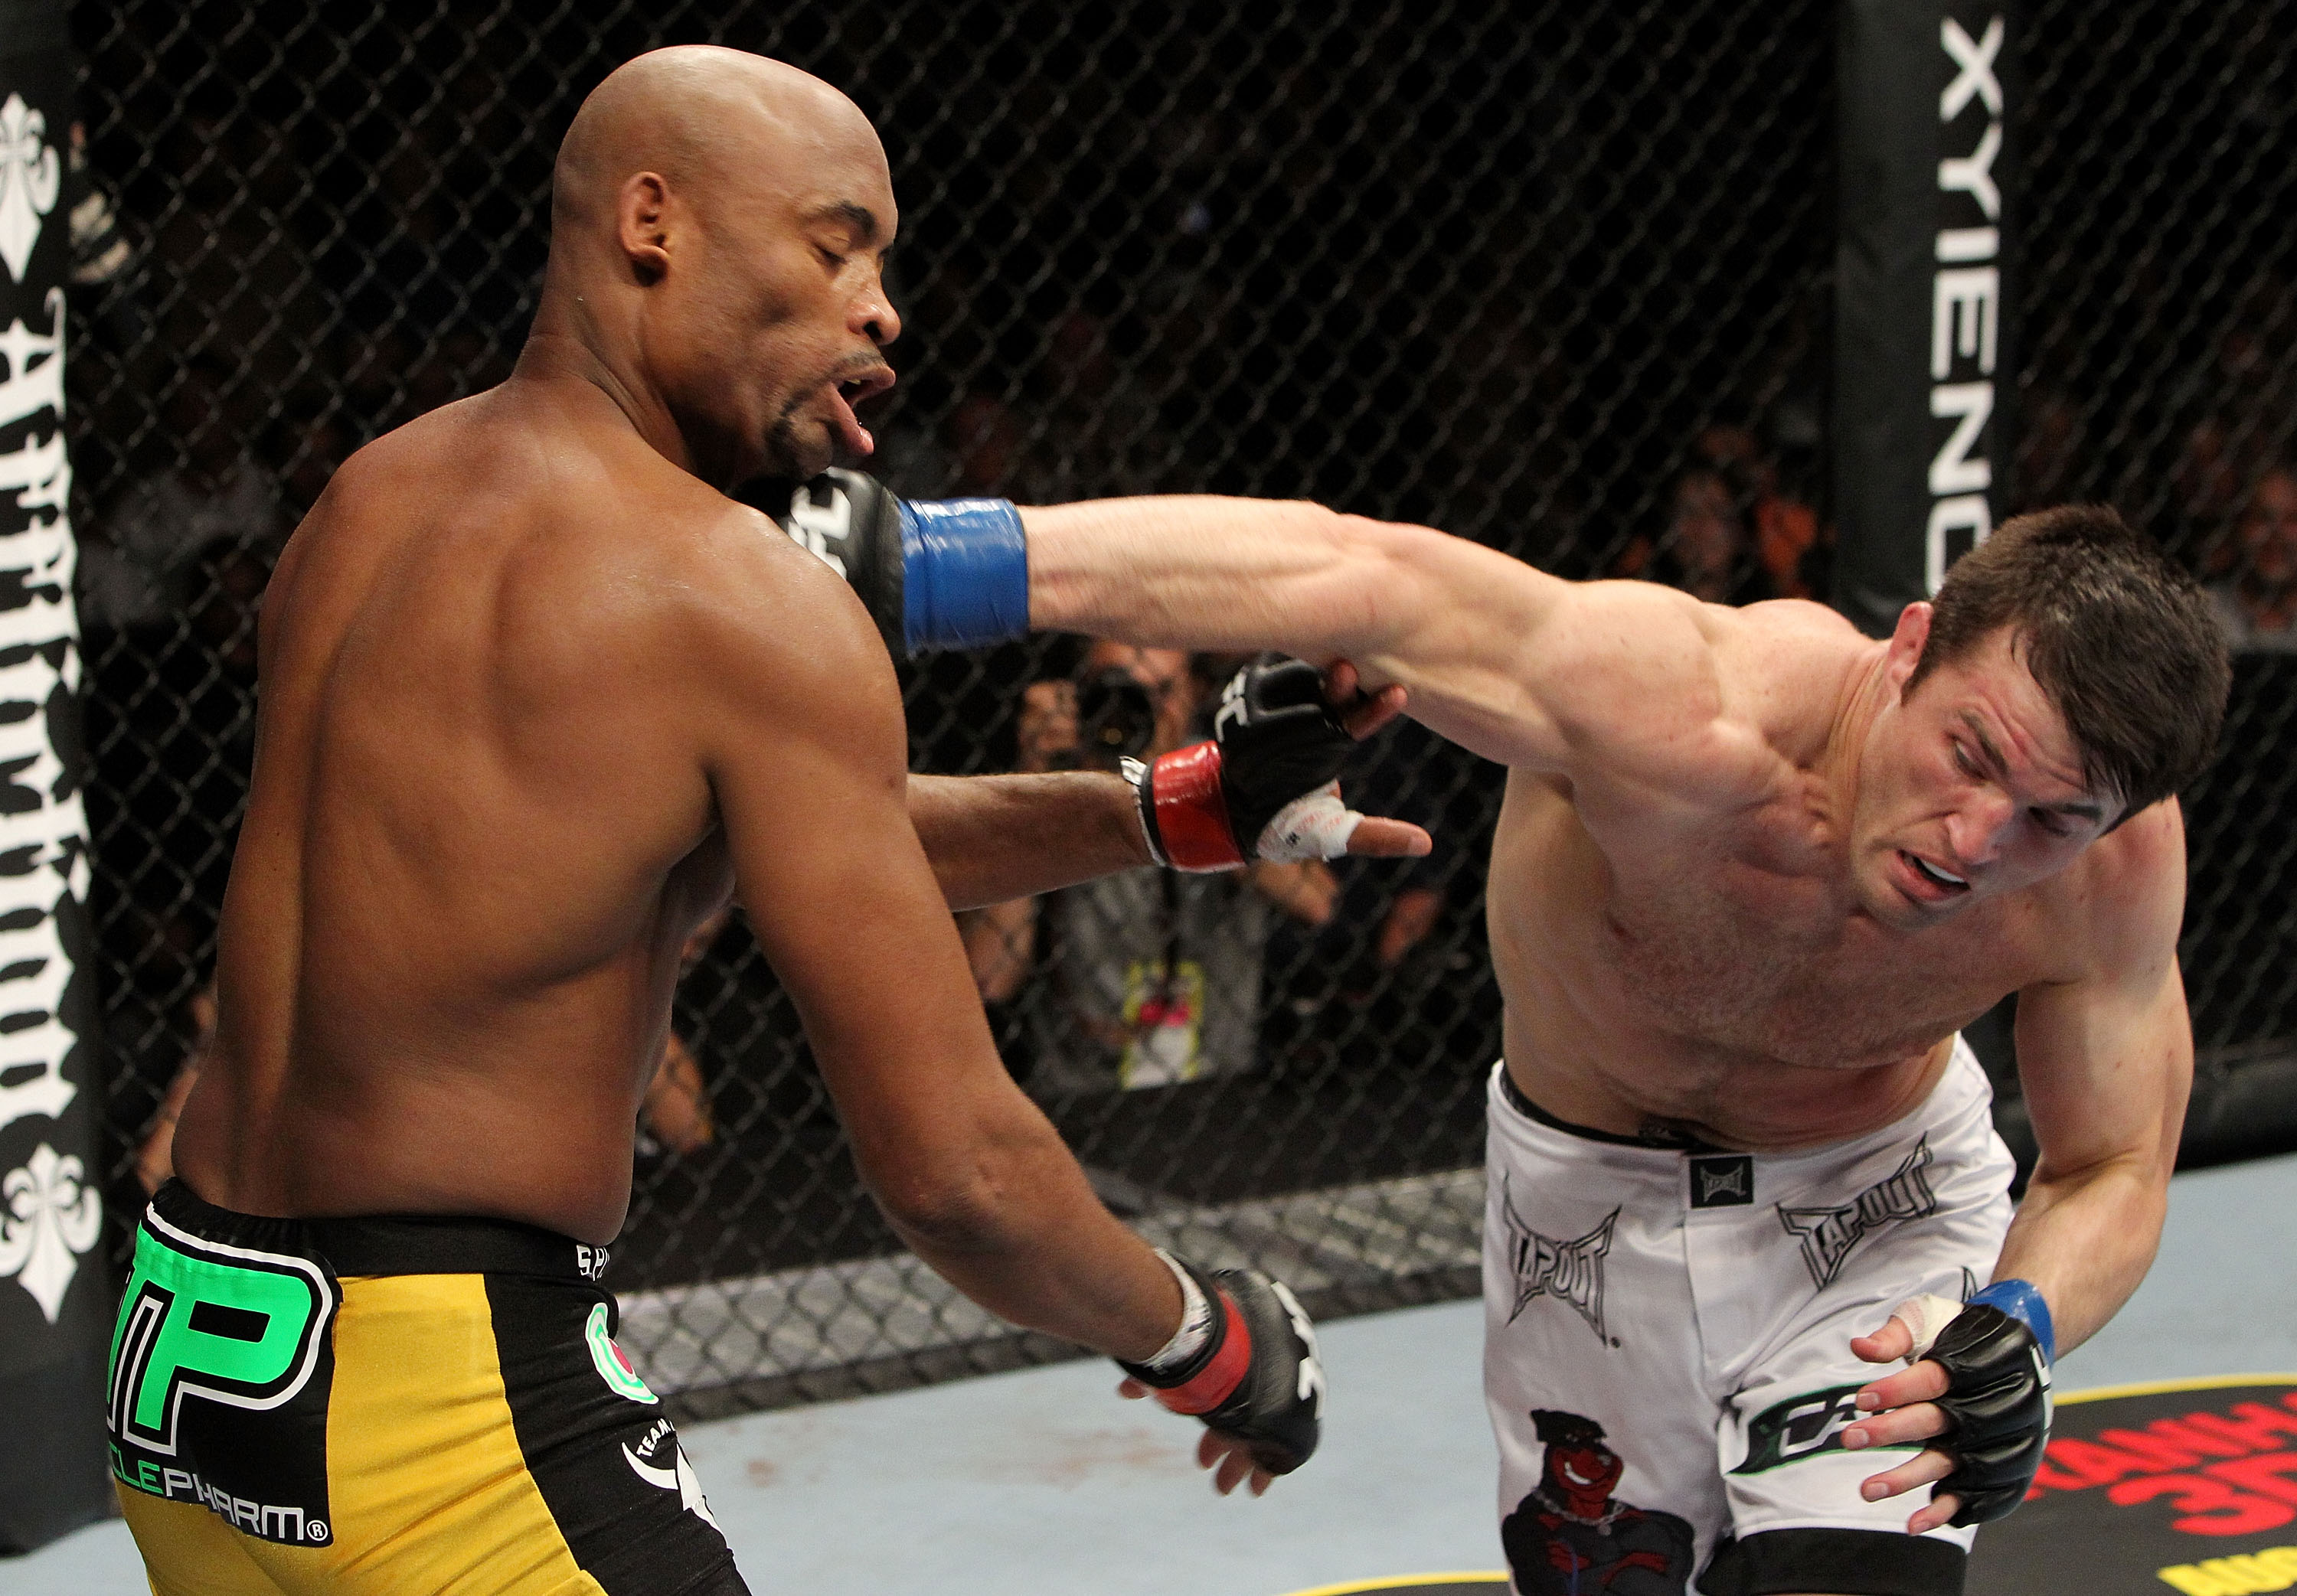 OAKLAND, CA - AUGUST 07:  Chael Sonnen punches Anderson Silva during the UFC Middleweight Championship bout at Oracle Arena on August 7, 2010 in Oakland, California.  (Photo by Josh Hedges/Zuffa LLC/Zuffa LLC via Getty Images)